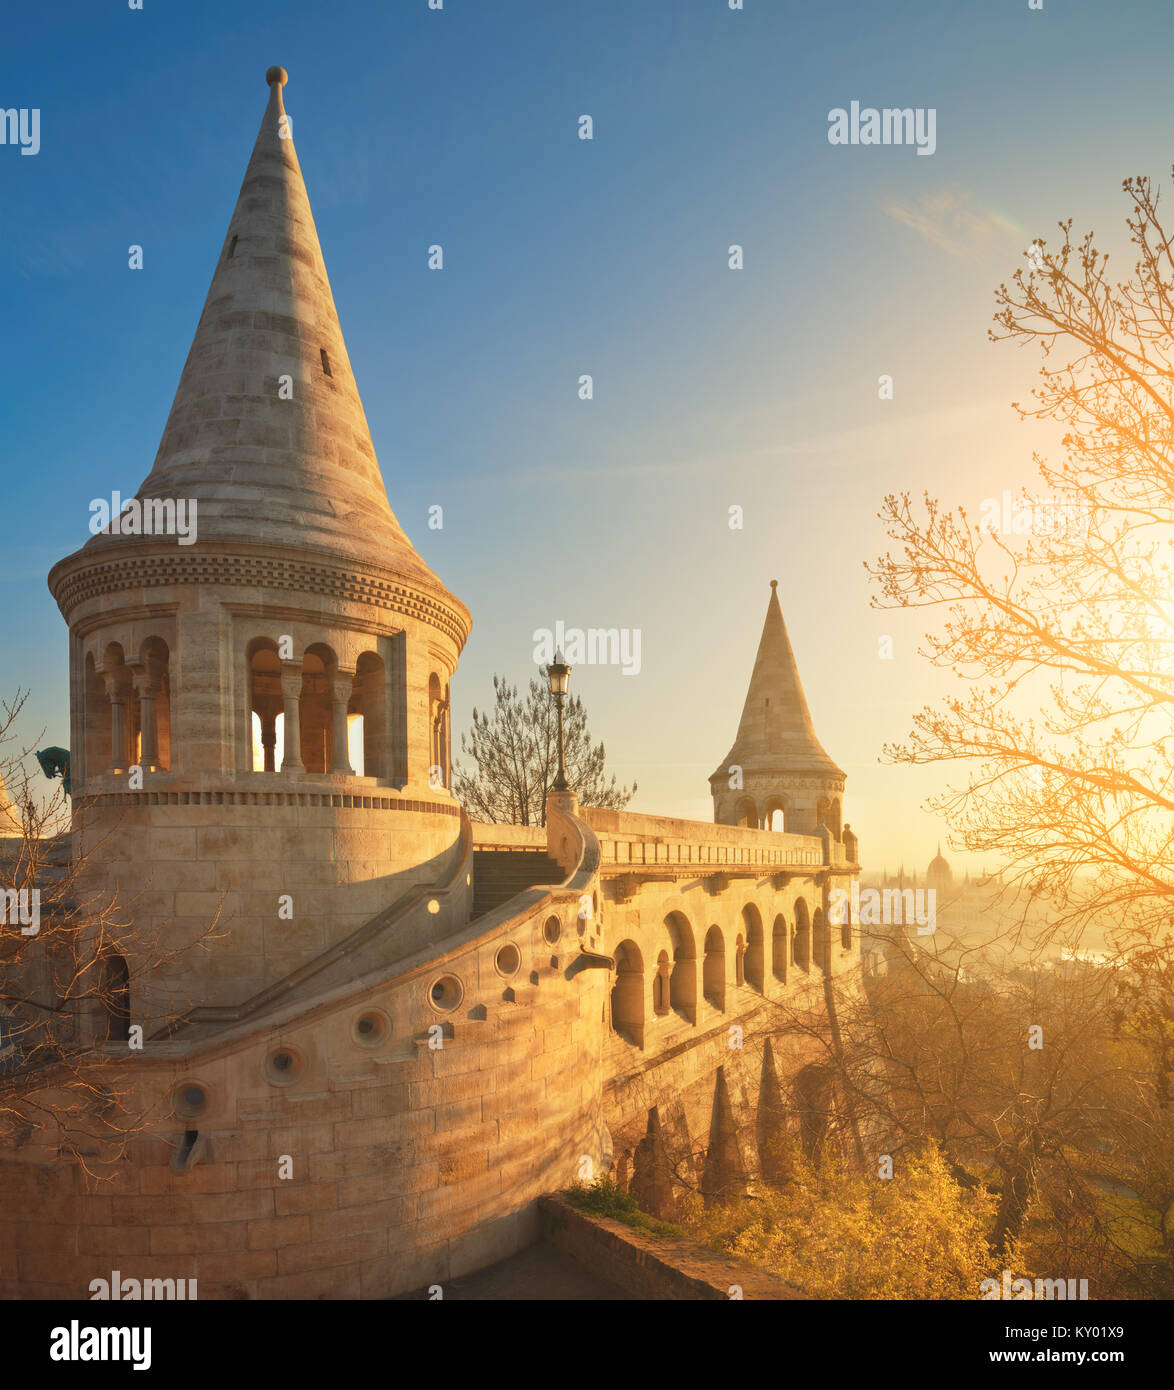 Fishermans Bastion in Budapest, Hungary, on the sunrise. Vertical panorama made. - Stock Image